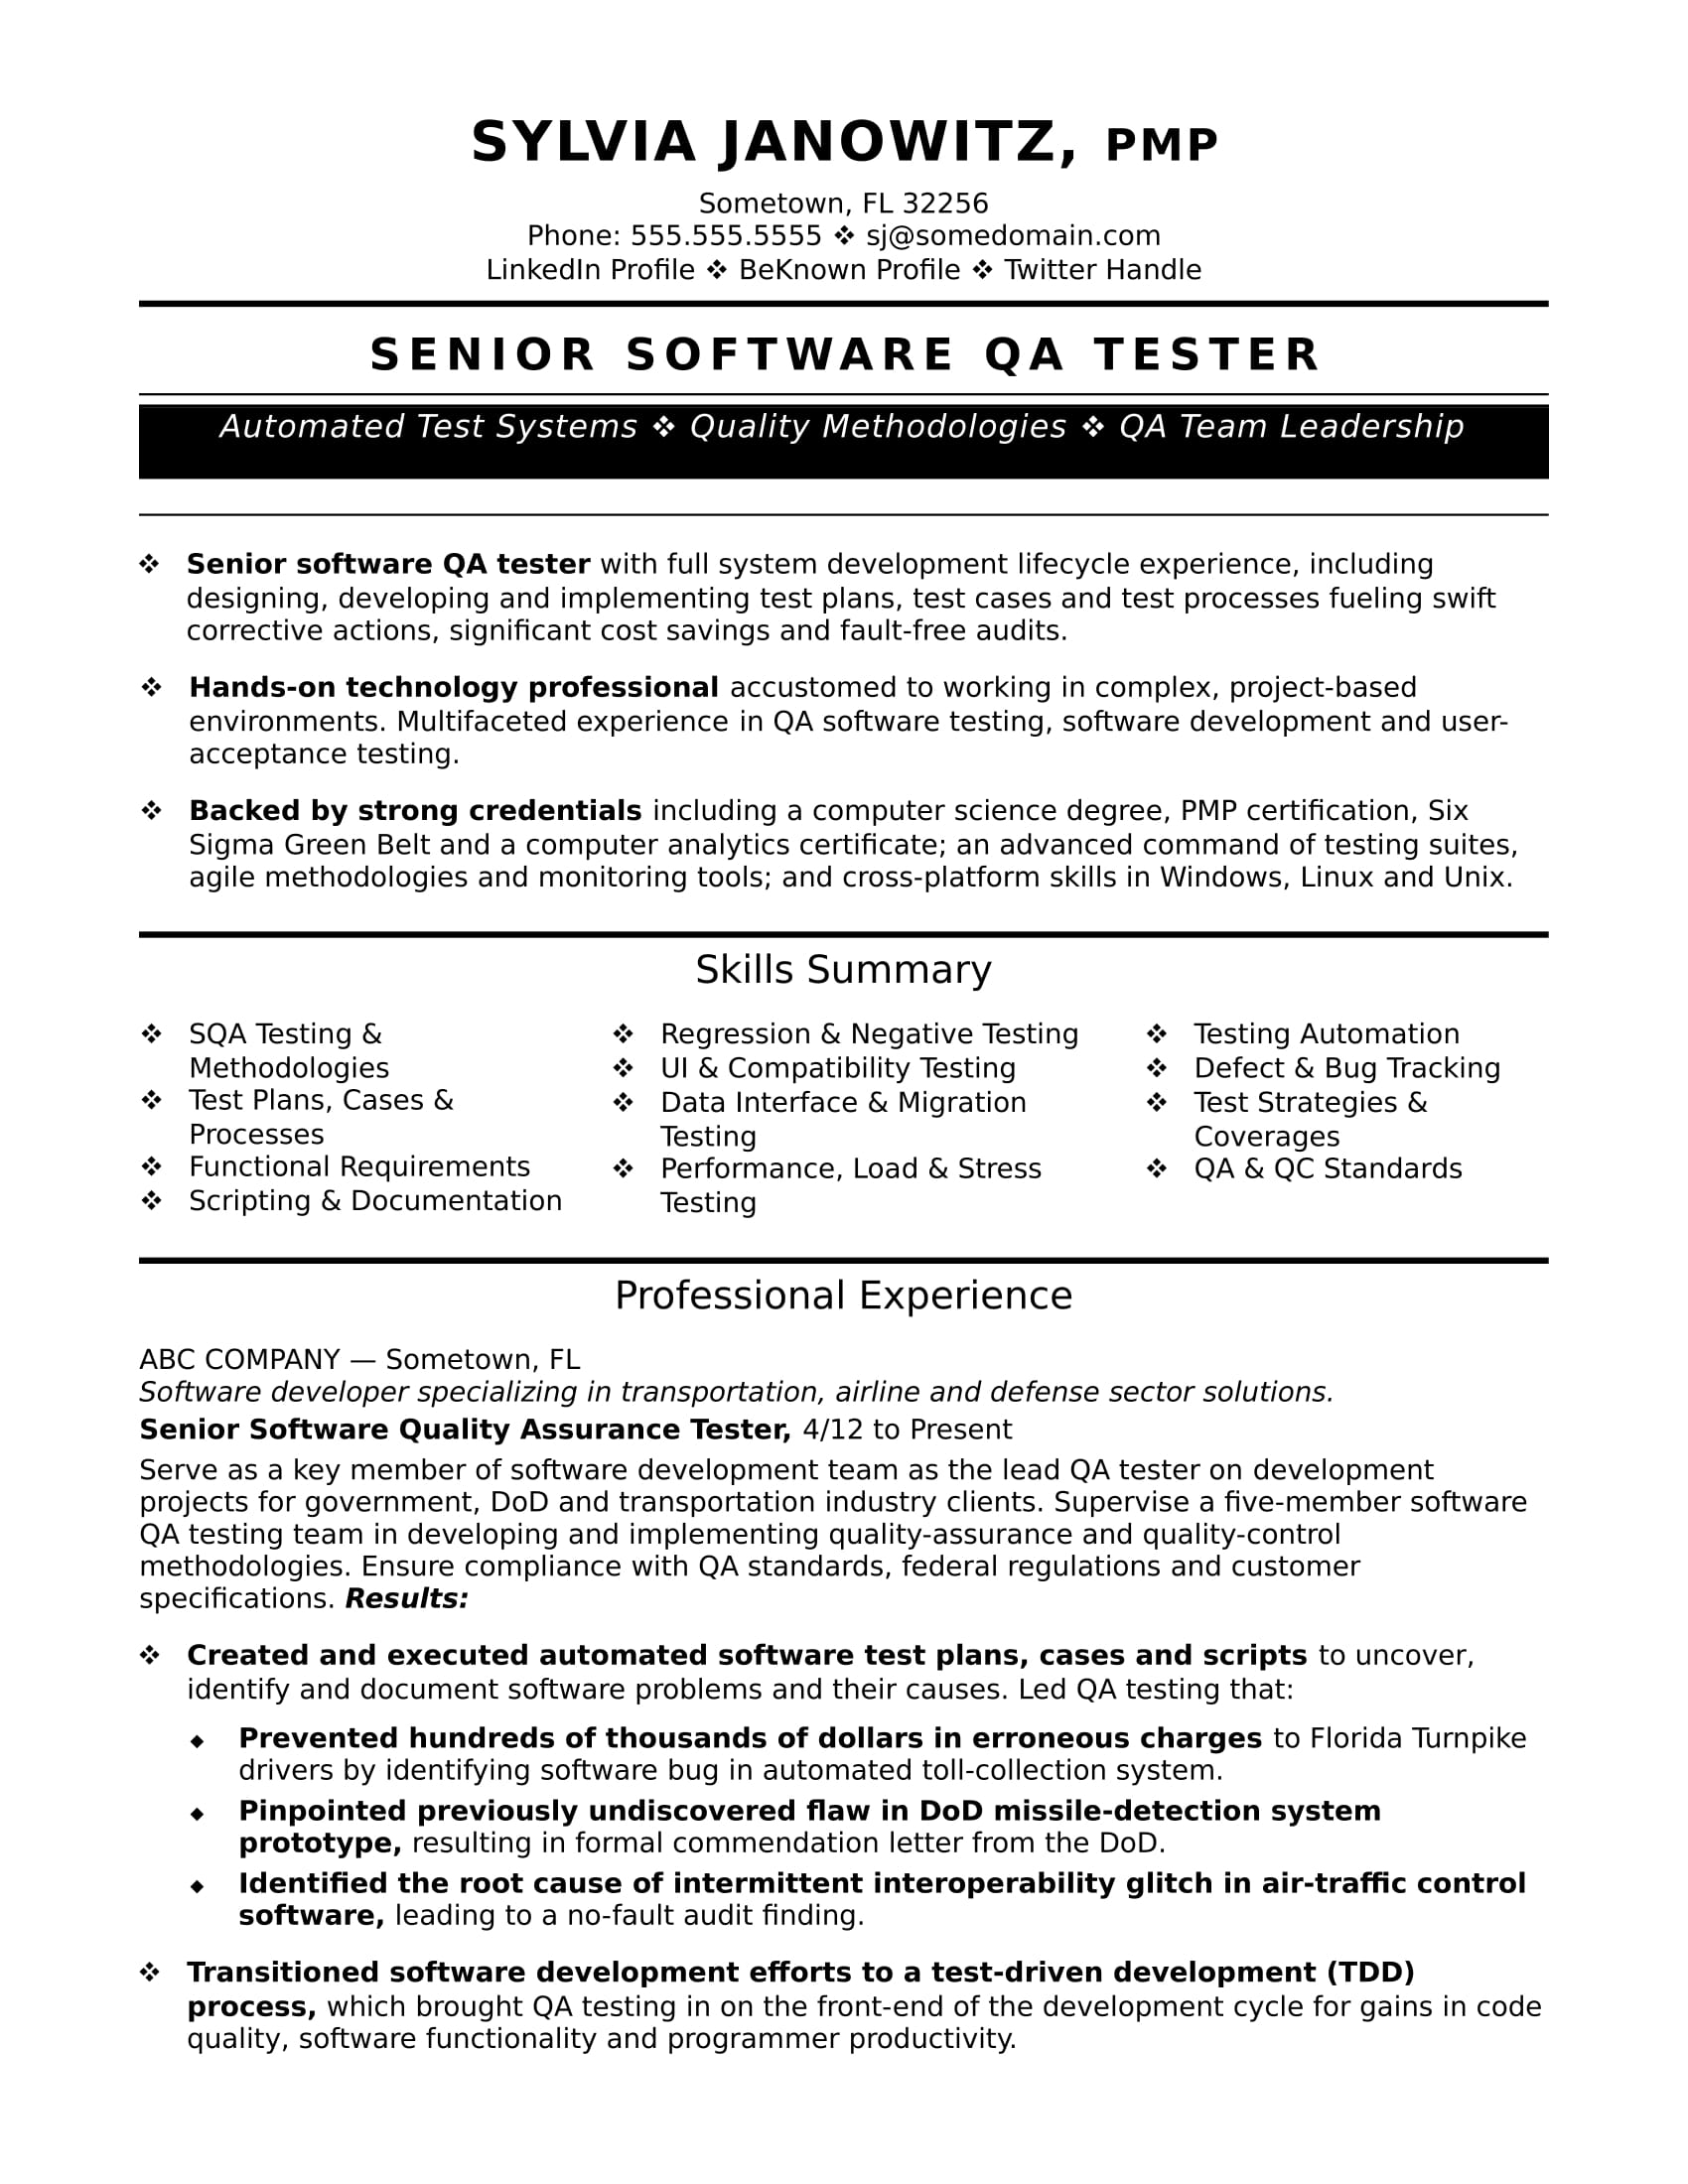 Resume Of Software Tester